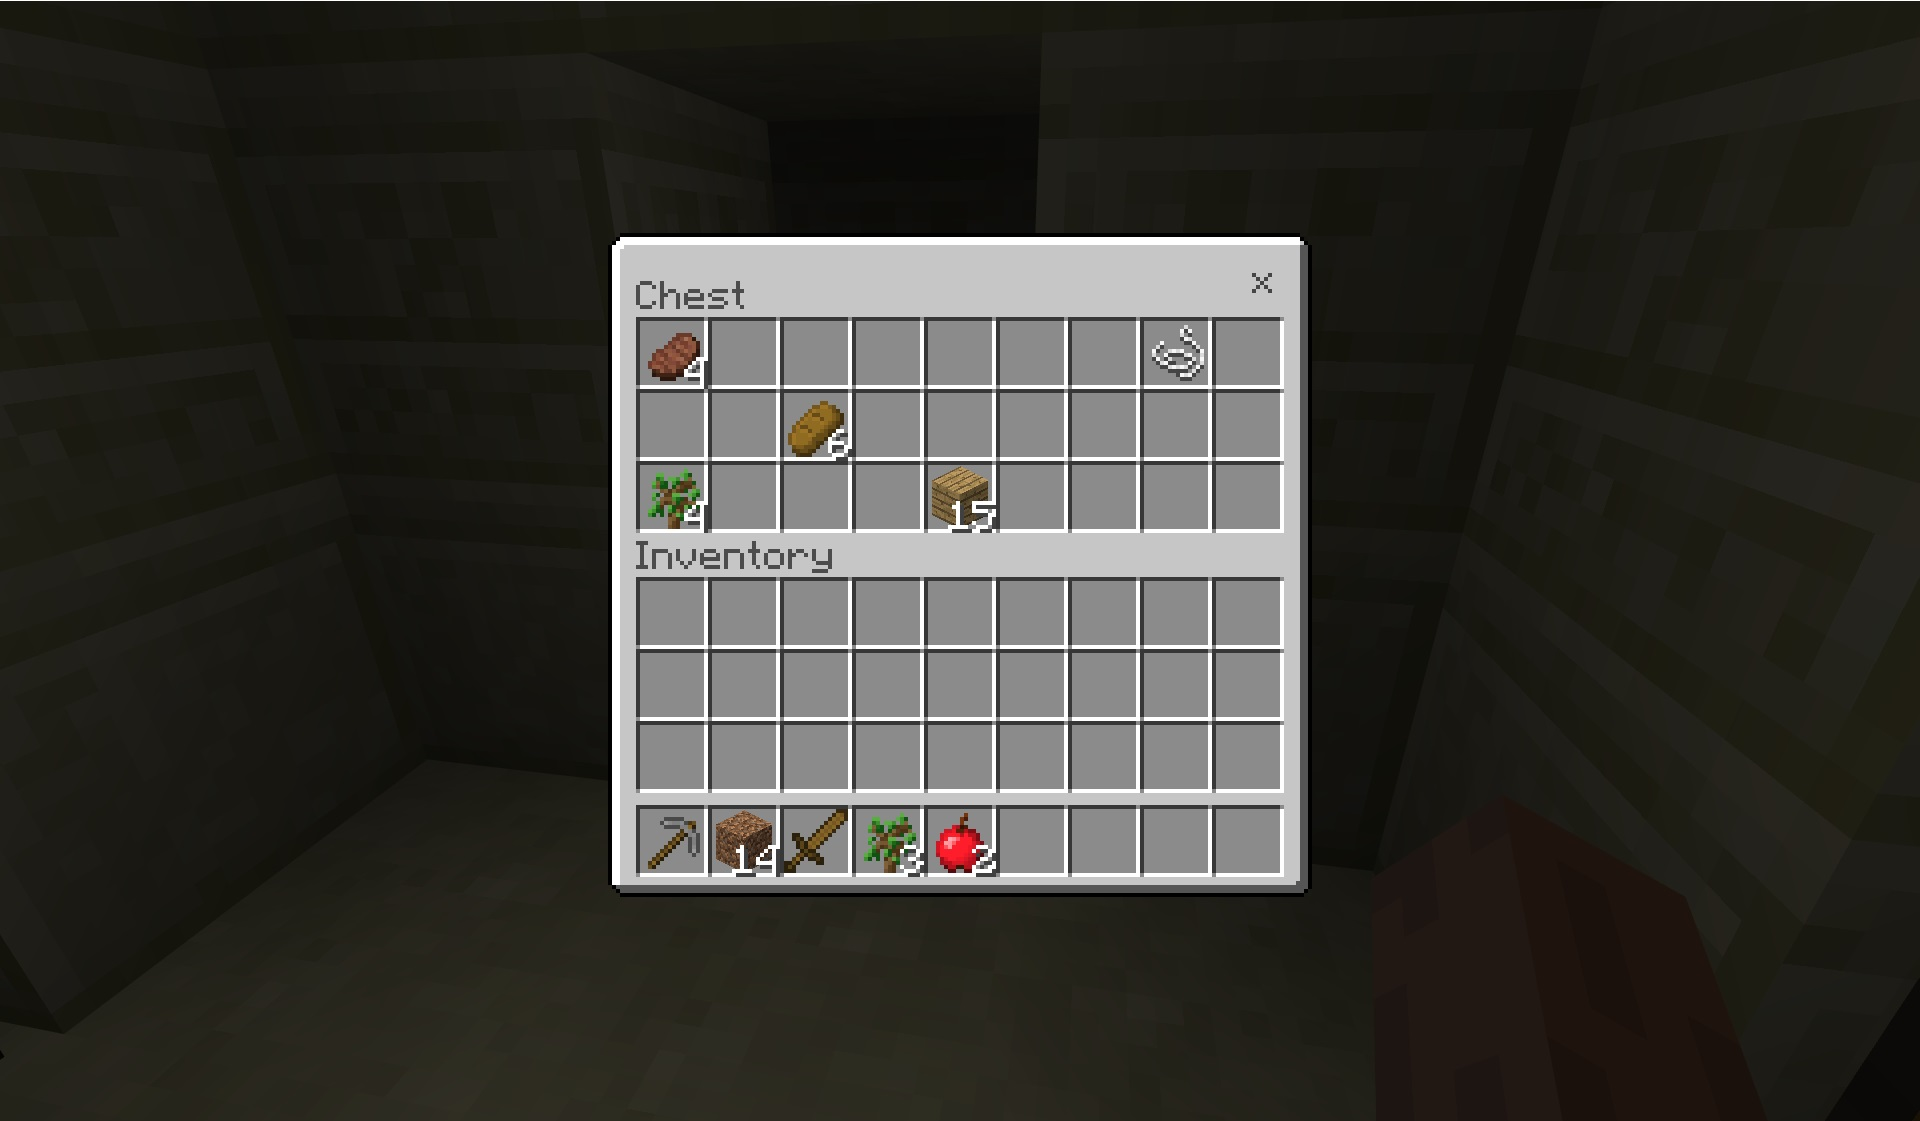 Minecraft resource chest and inventory window